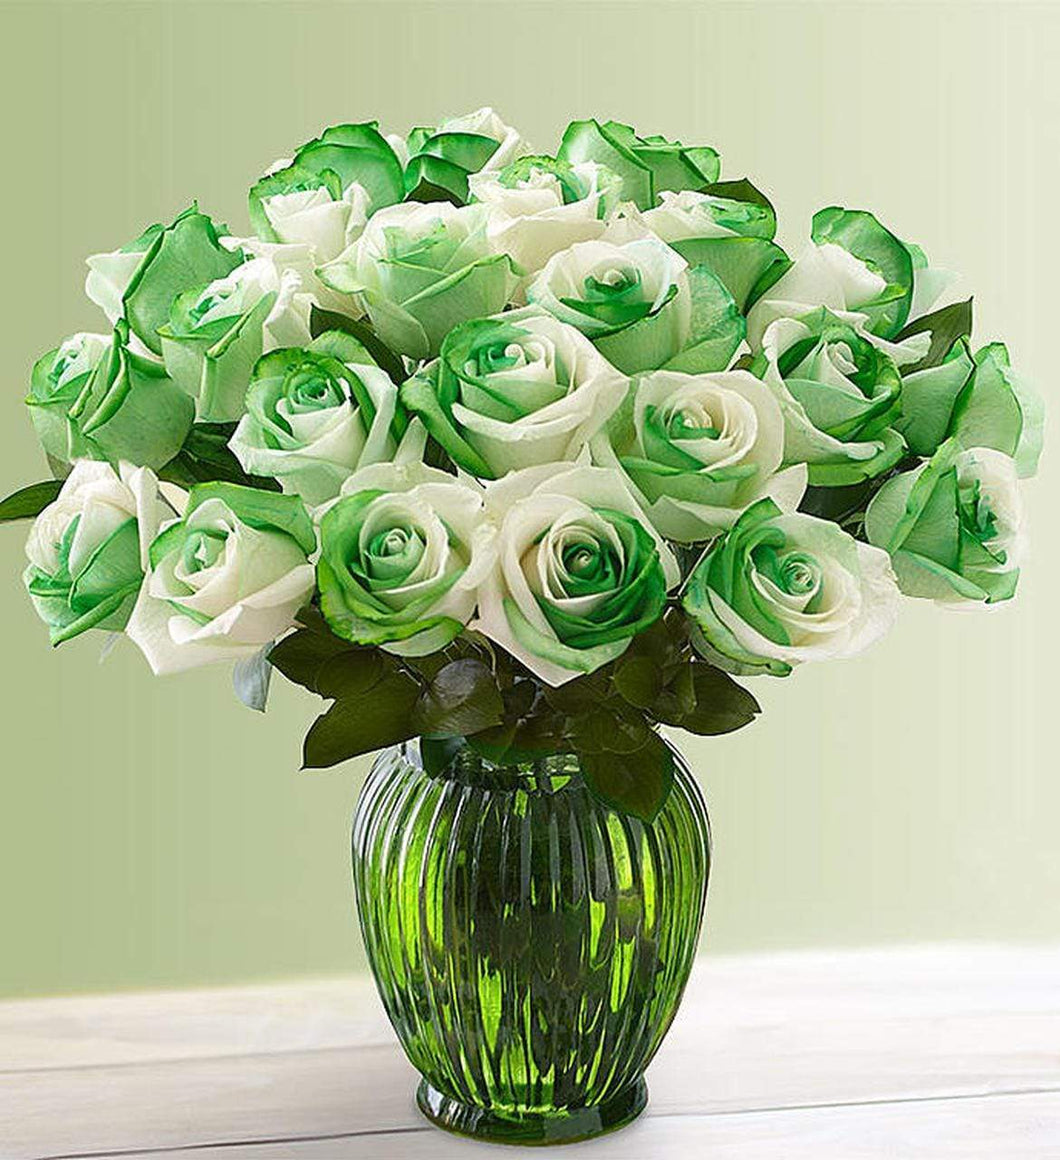 5D Diamond Painting St. Patrick's Day Roses Kit